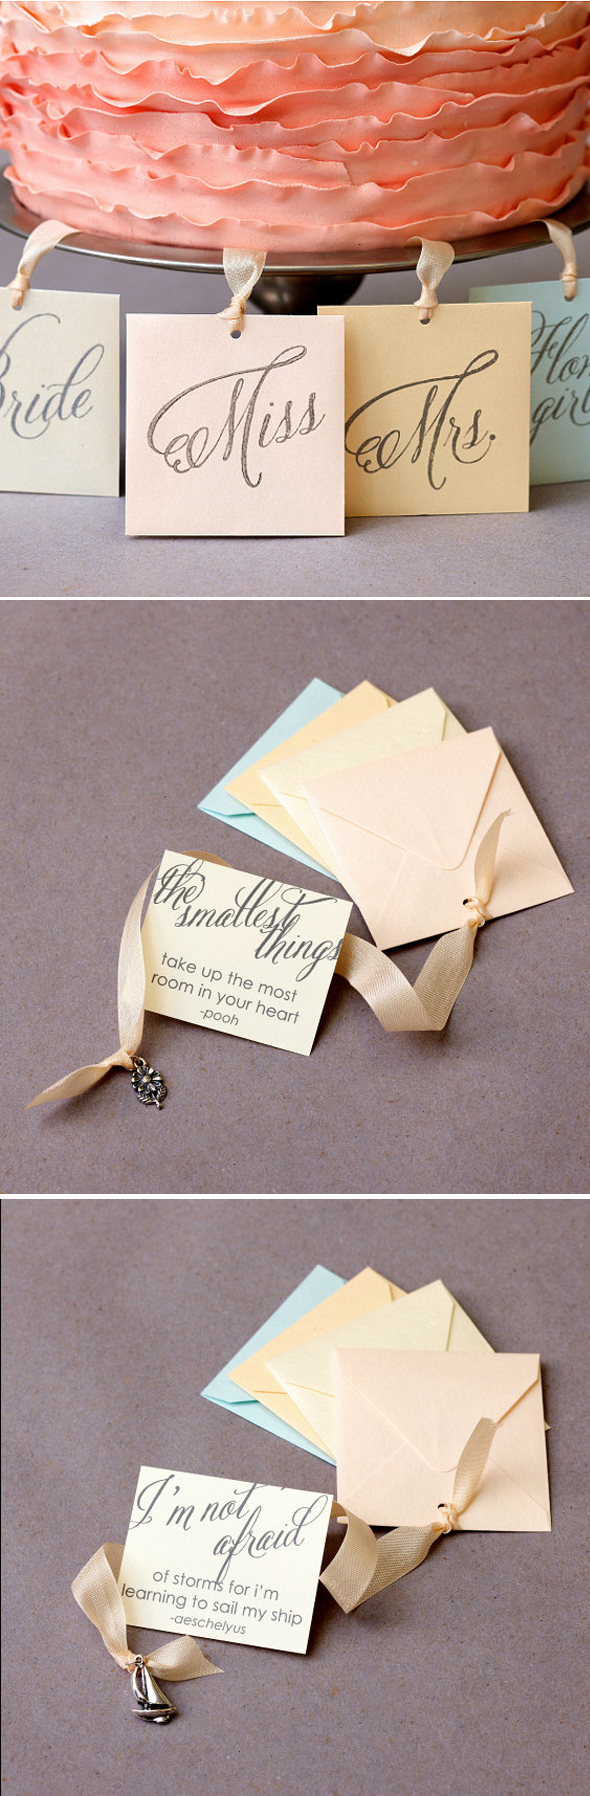 ♥ bridesmaids luncheon game  charm pull! Always wanted this at a bridal shower or bridesmaid luncheon. possible idea.